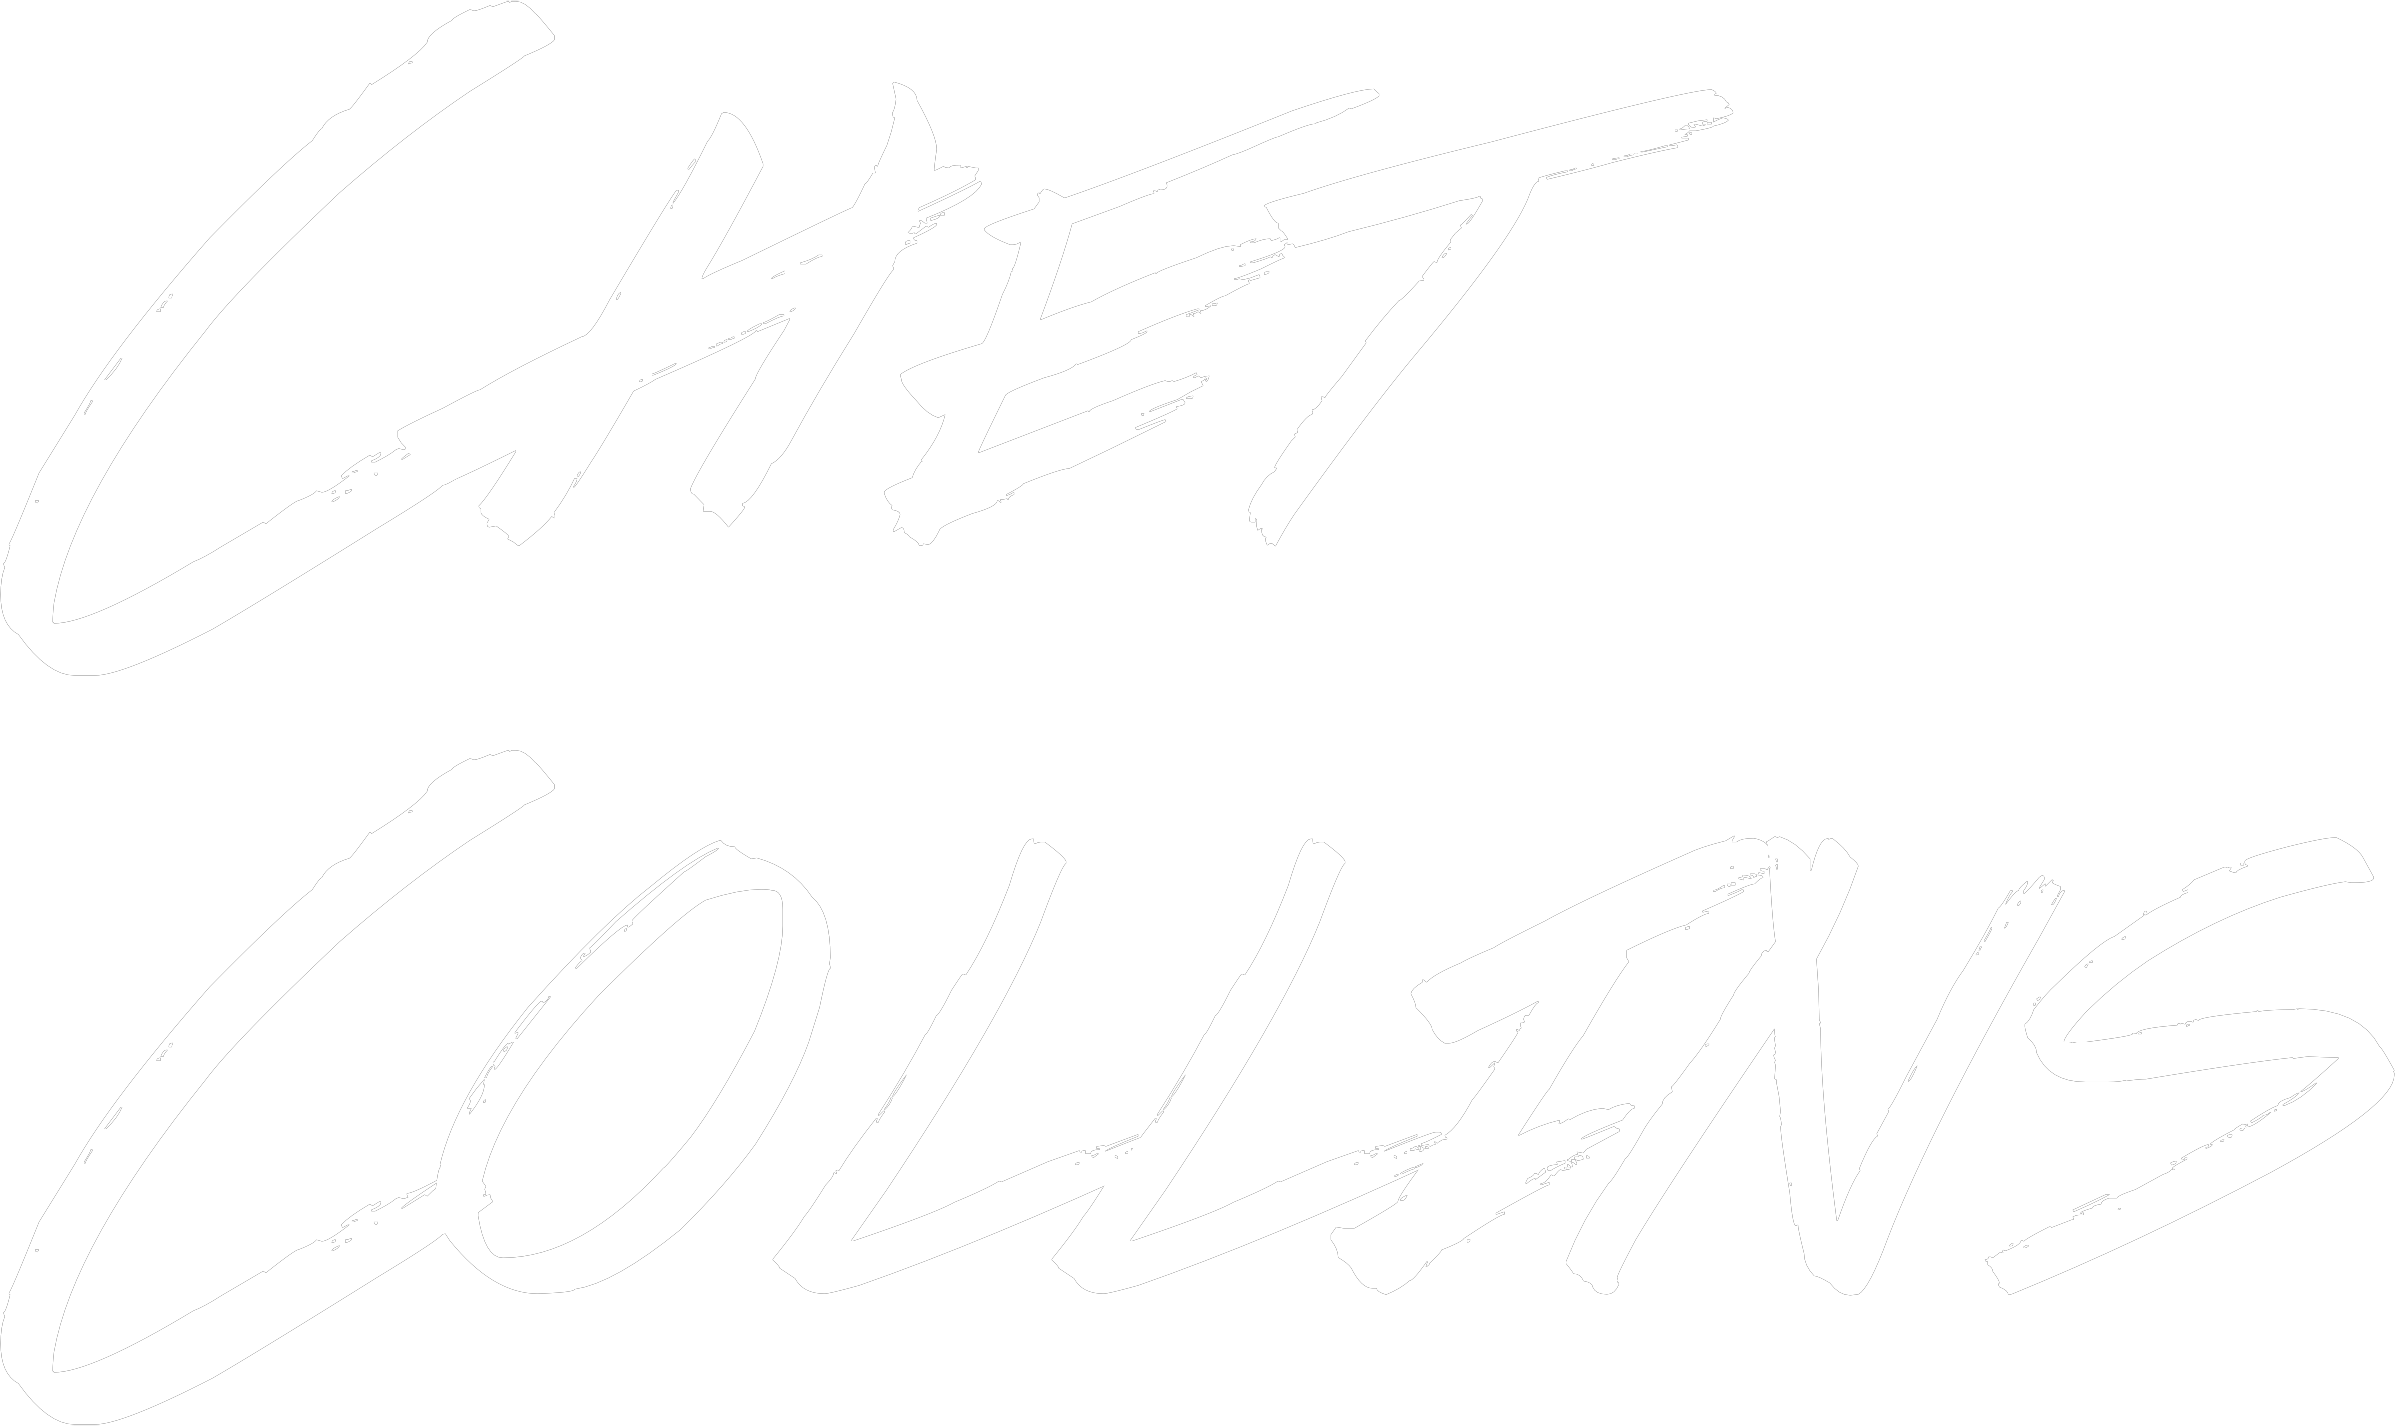 Chet Collins in stylized text